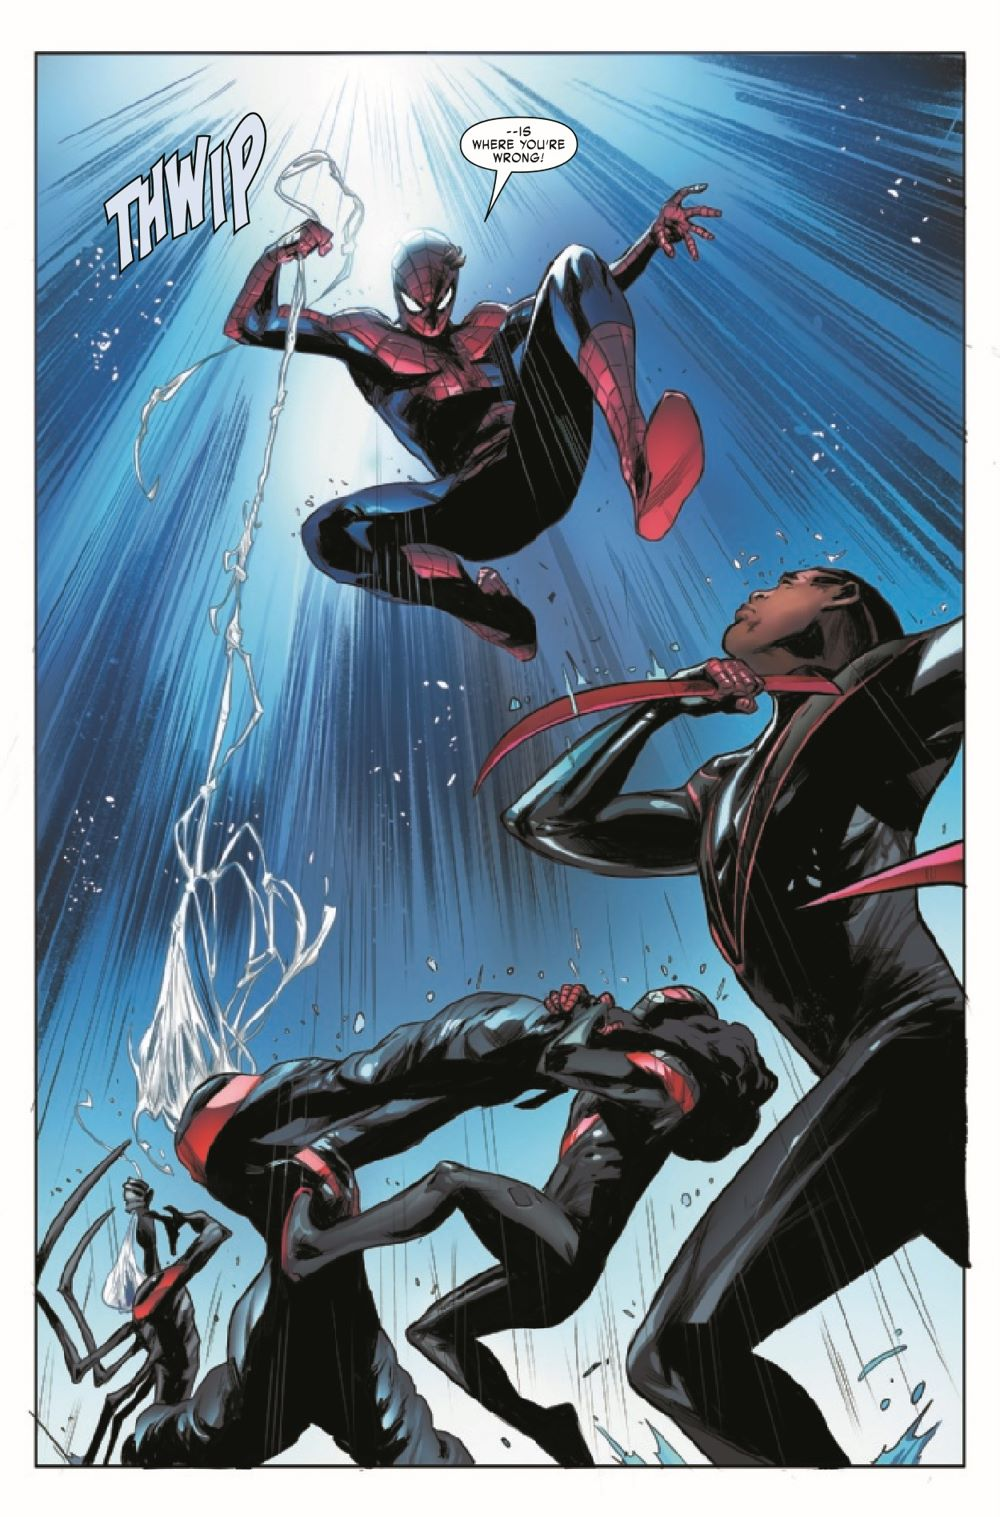 MMSM2018026_Preview-6 ComicList Previews: MILES MORALES SPIDER-MAN #26